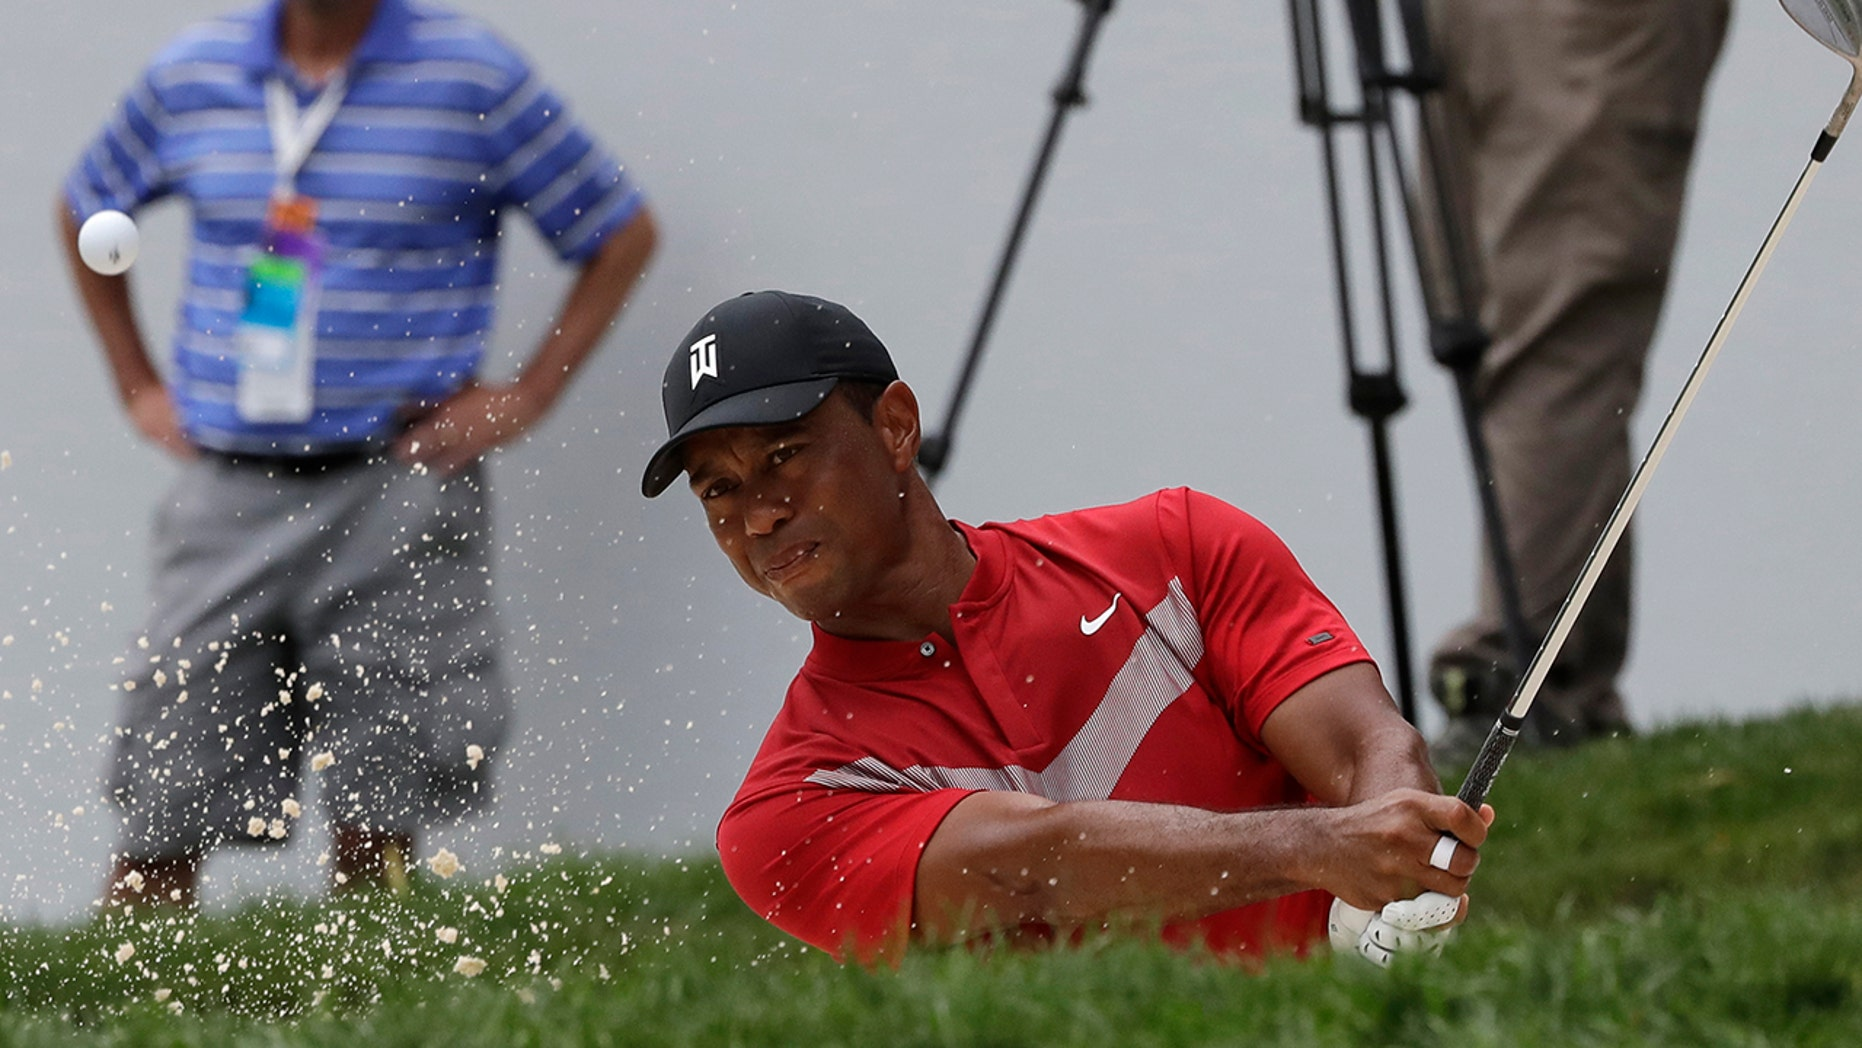 Westlake Legal Group GOLF-Tiger-Woods13 Early end of season for Woods doesn't take away from Masters fox-news/sports/golf fox-news/person/tiger-woods fnc/sports fnc df9918be-09ea-544b-ba5f-9d9357c13738 Associated Press article